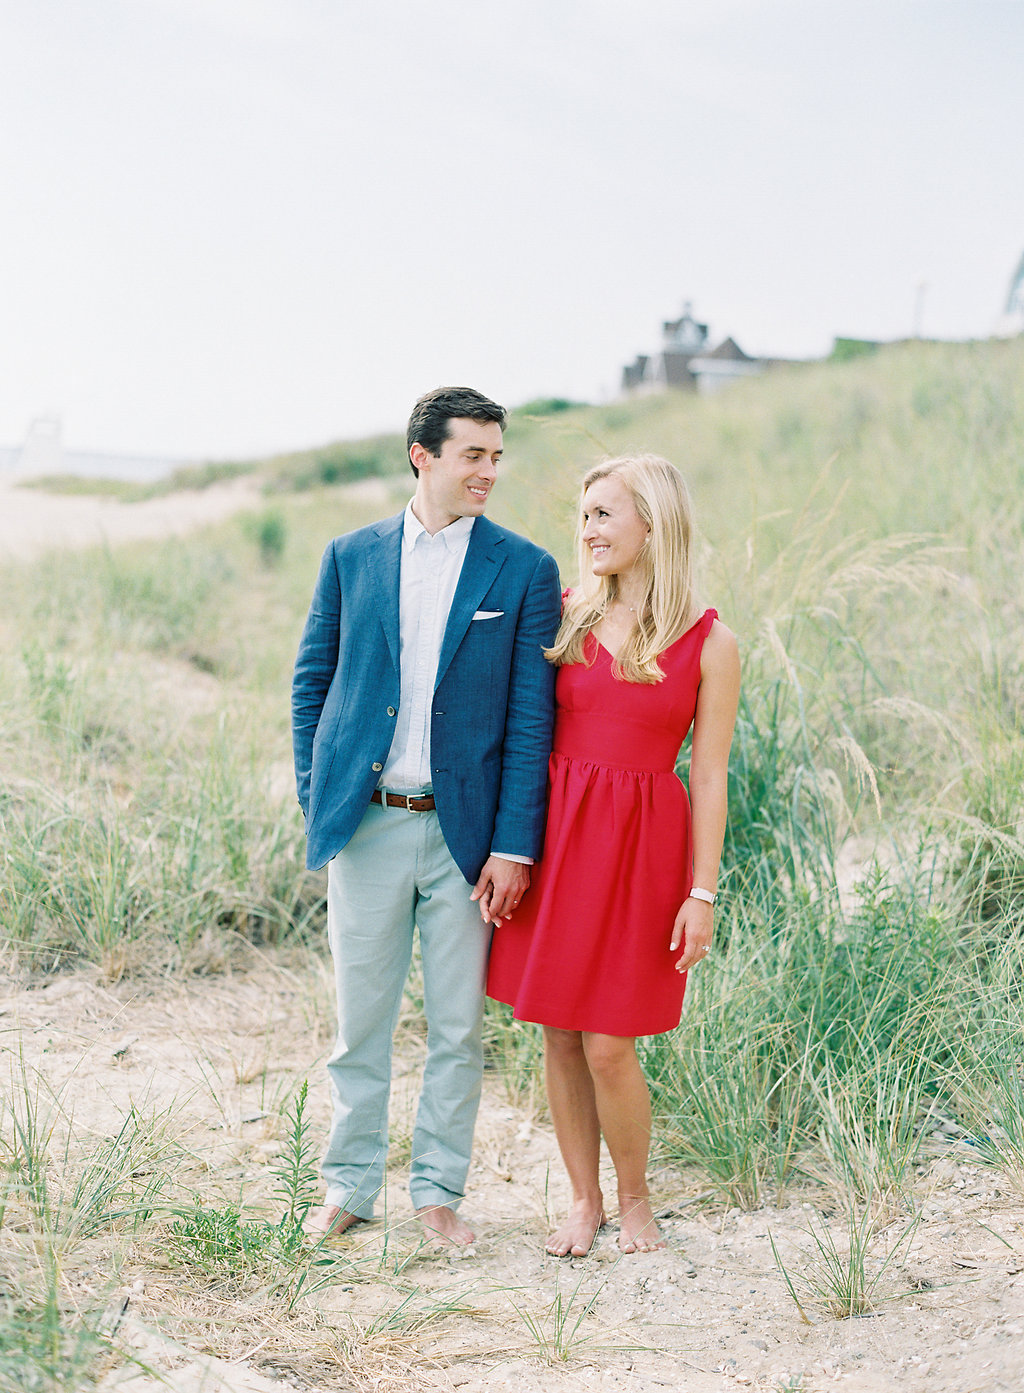 Marthas-Vineyard-Film-Photography-Anniversary-Session-2.jpg